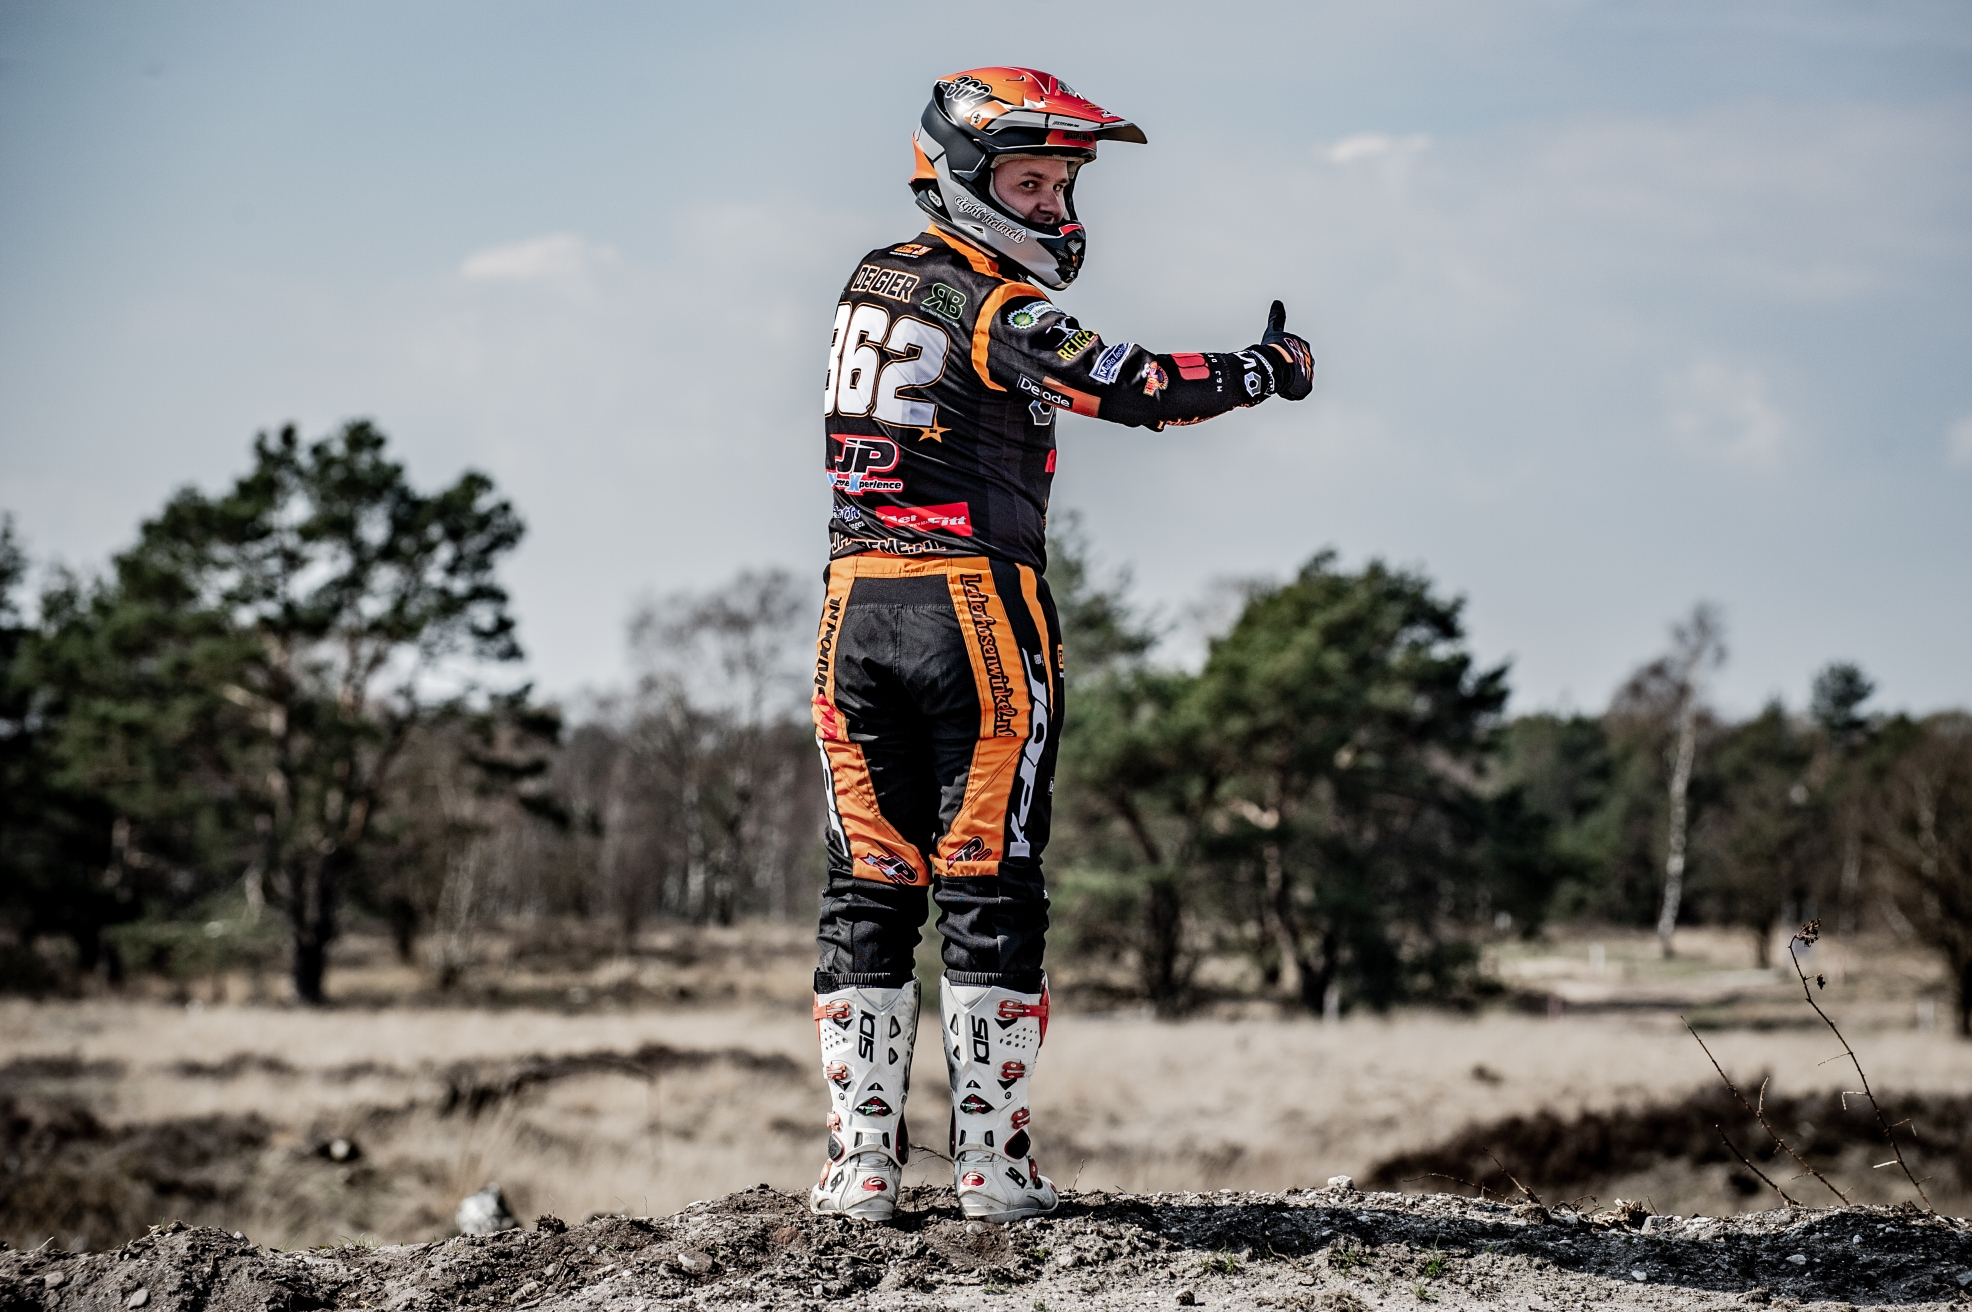 FOTOSHOOT MOTORCROSS RYMAX 2019-92_resized_20190405_013005551